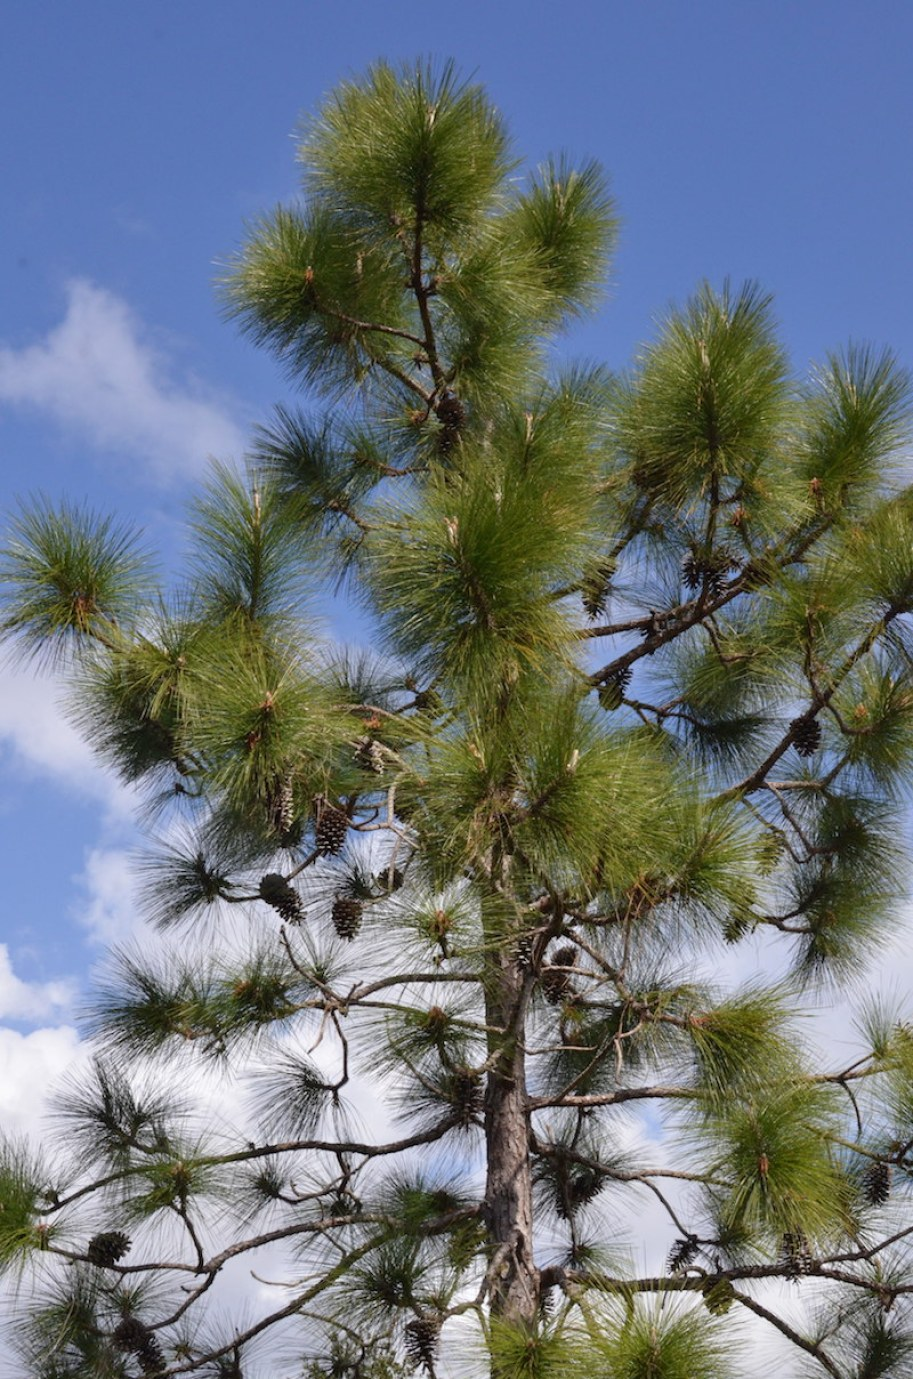 A pine tree with a blue sky and clouds.